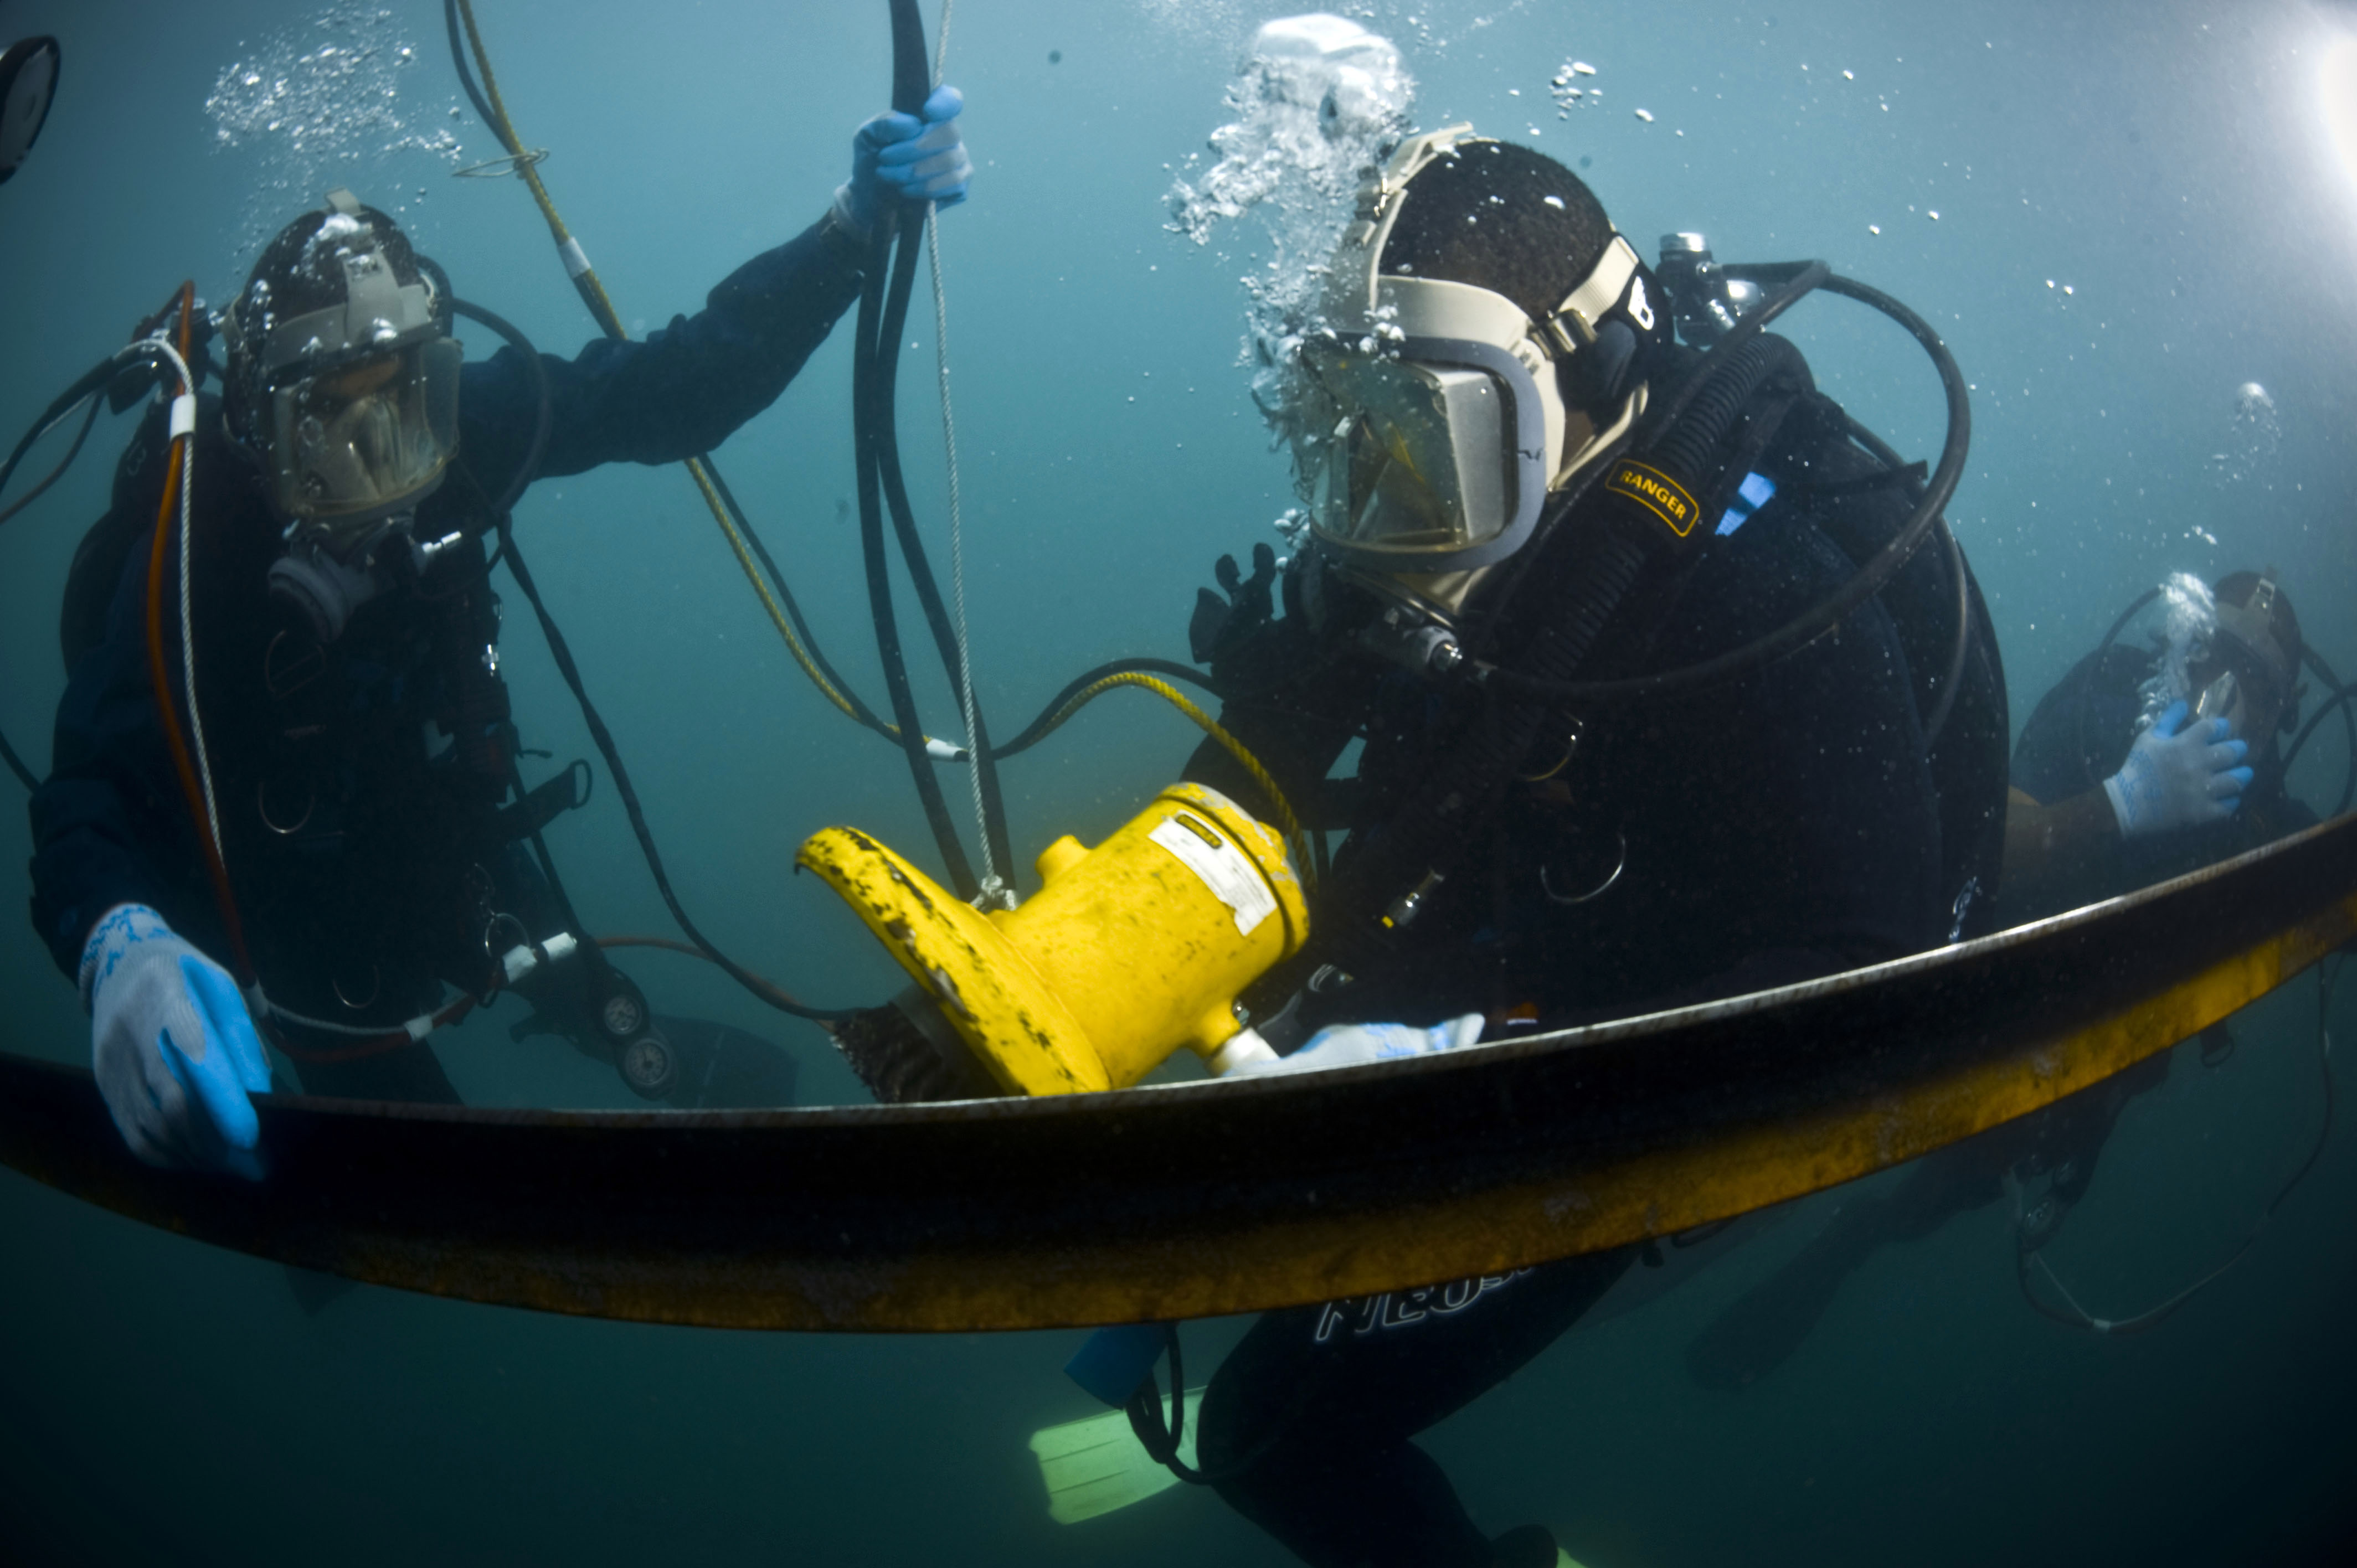 Hydraulic Lift Underwater : File us navy n l diver nd class sam